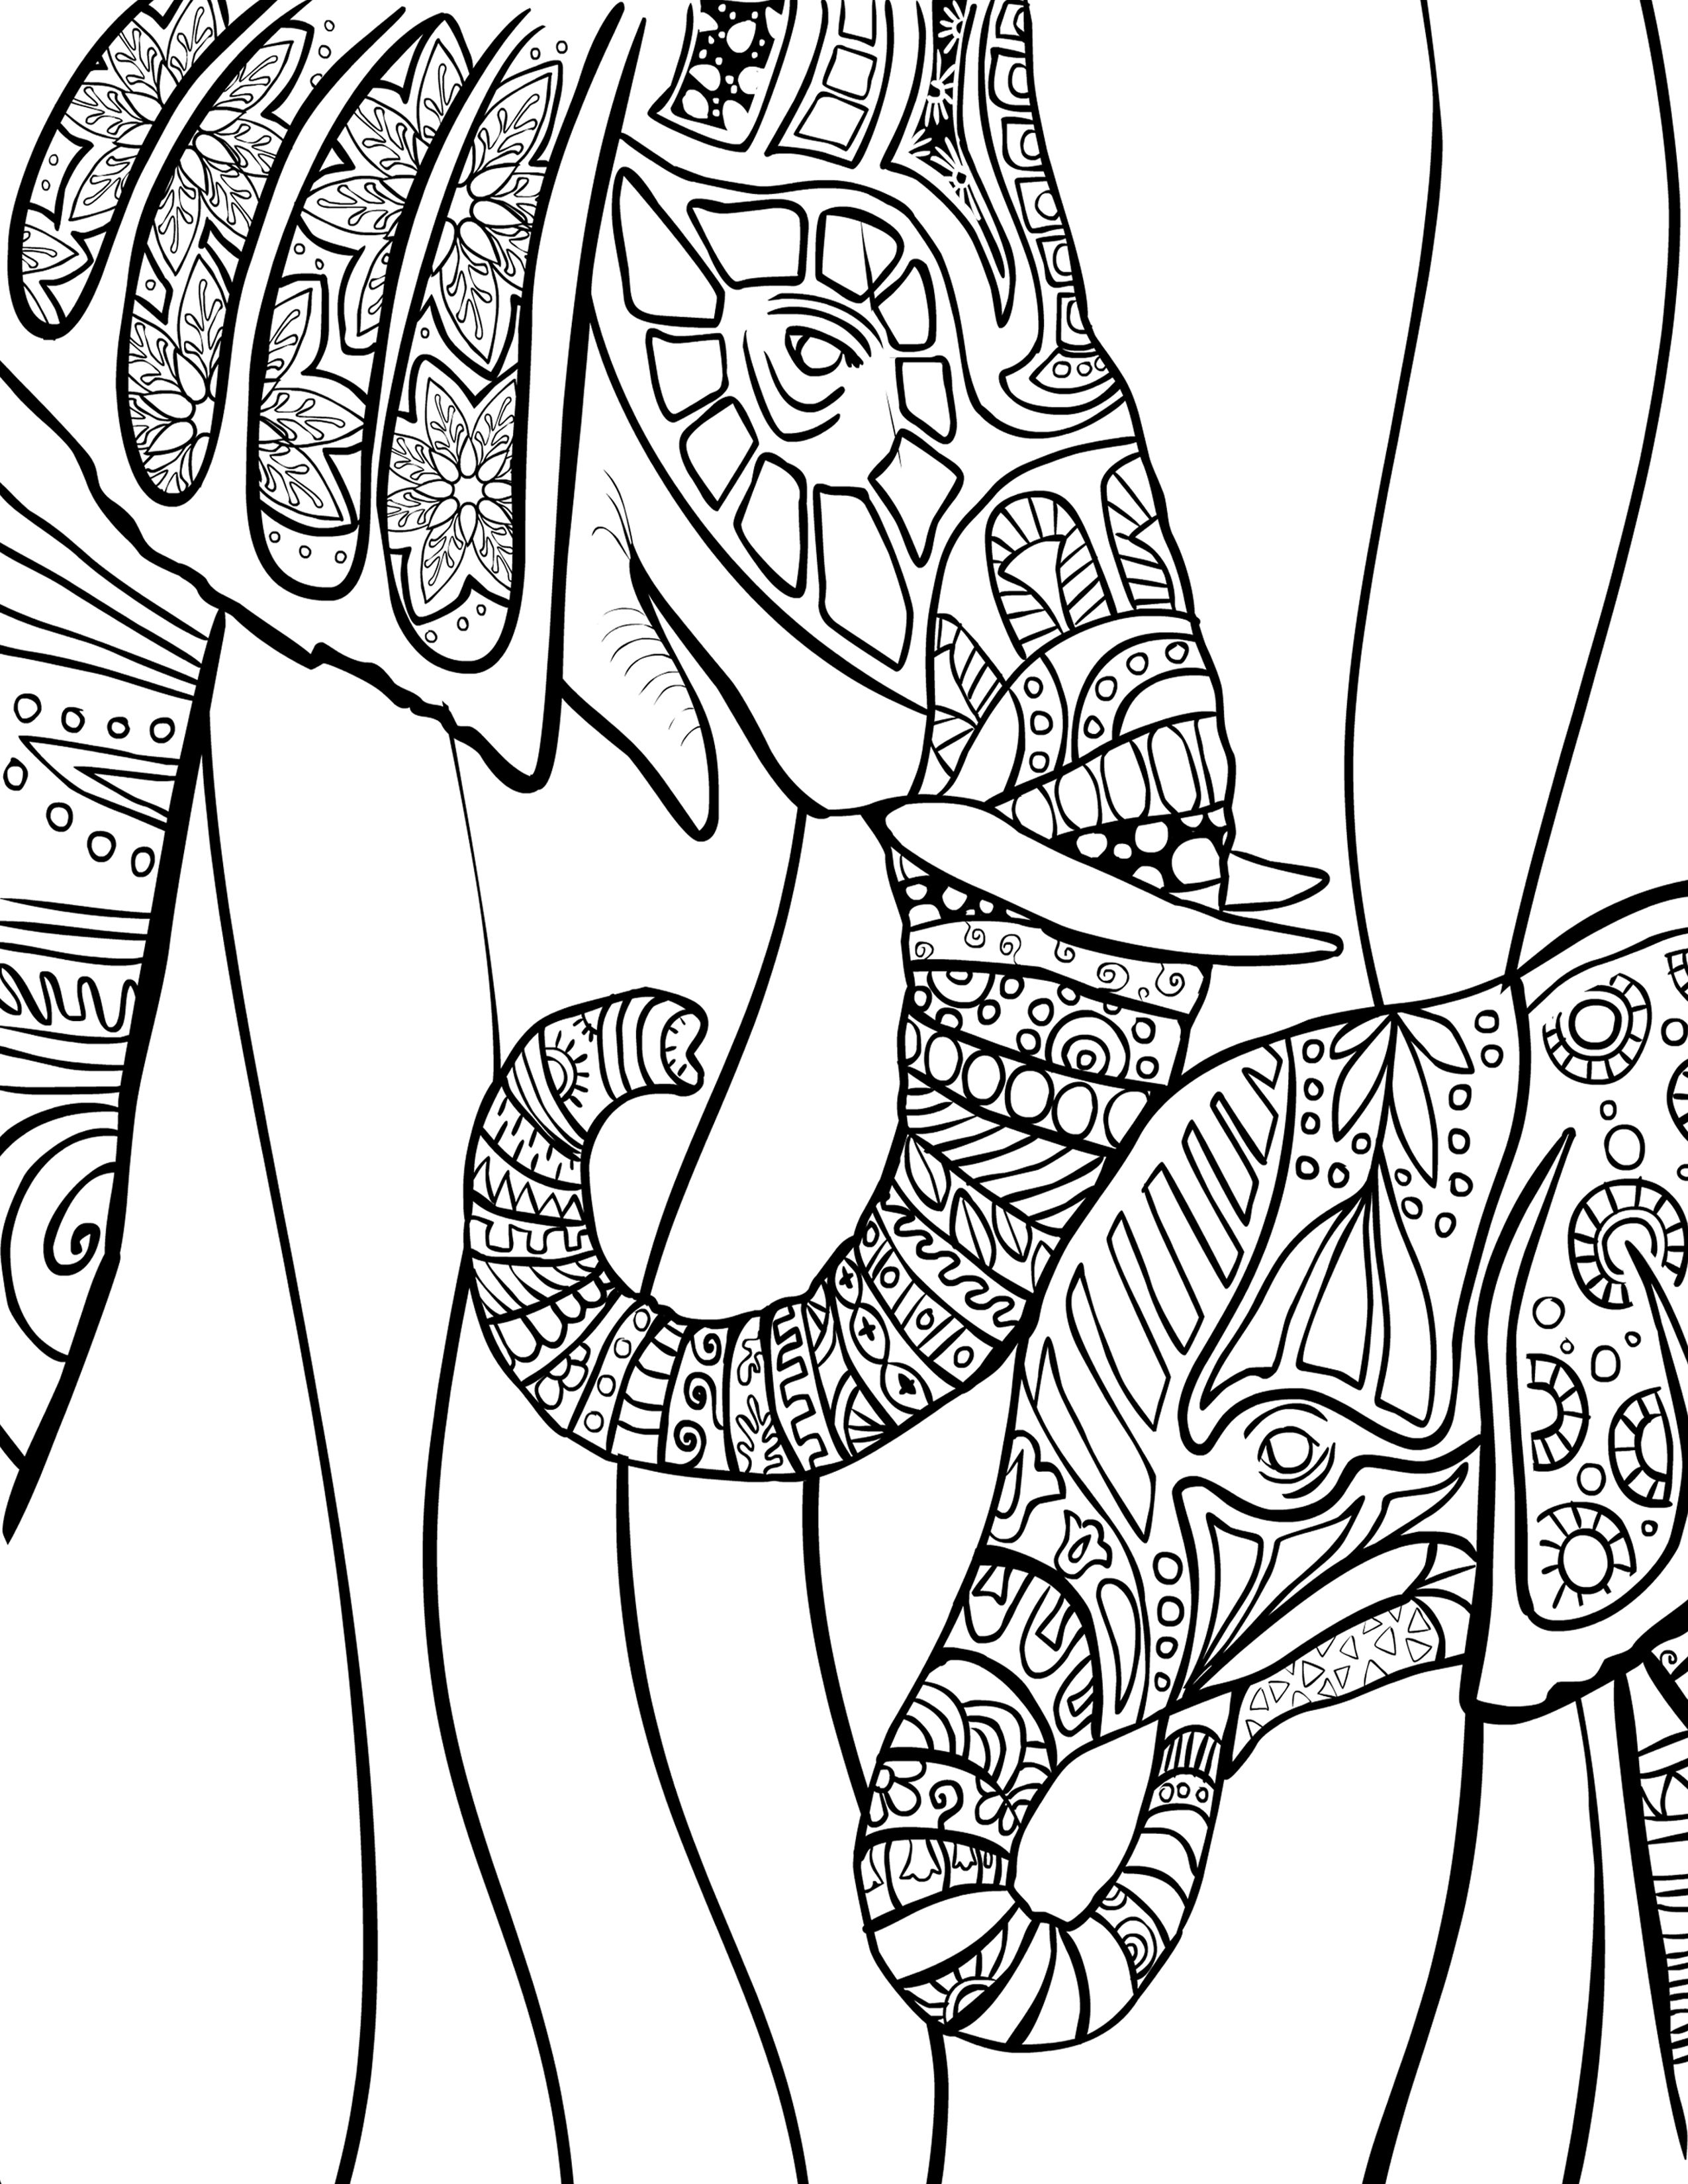 Elephant coloring pages free - Gorgeous Elephants Coloring Page Free Download Selah Works